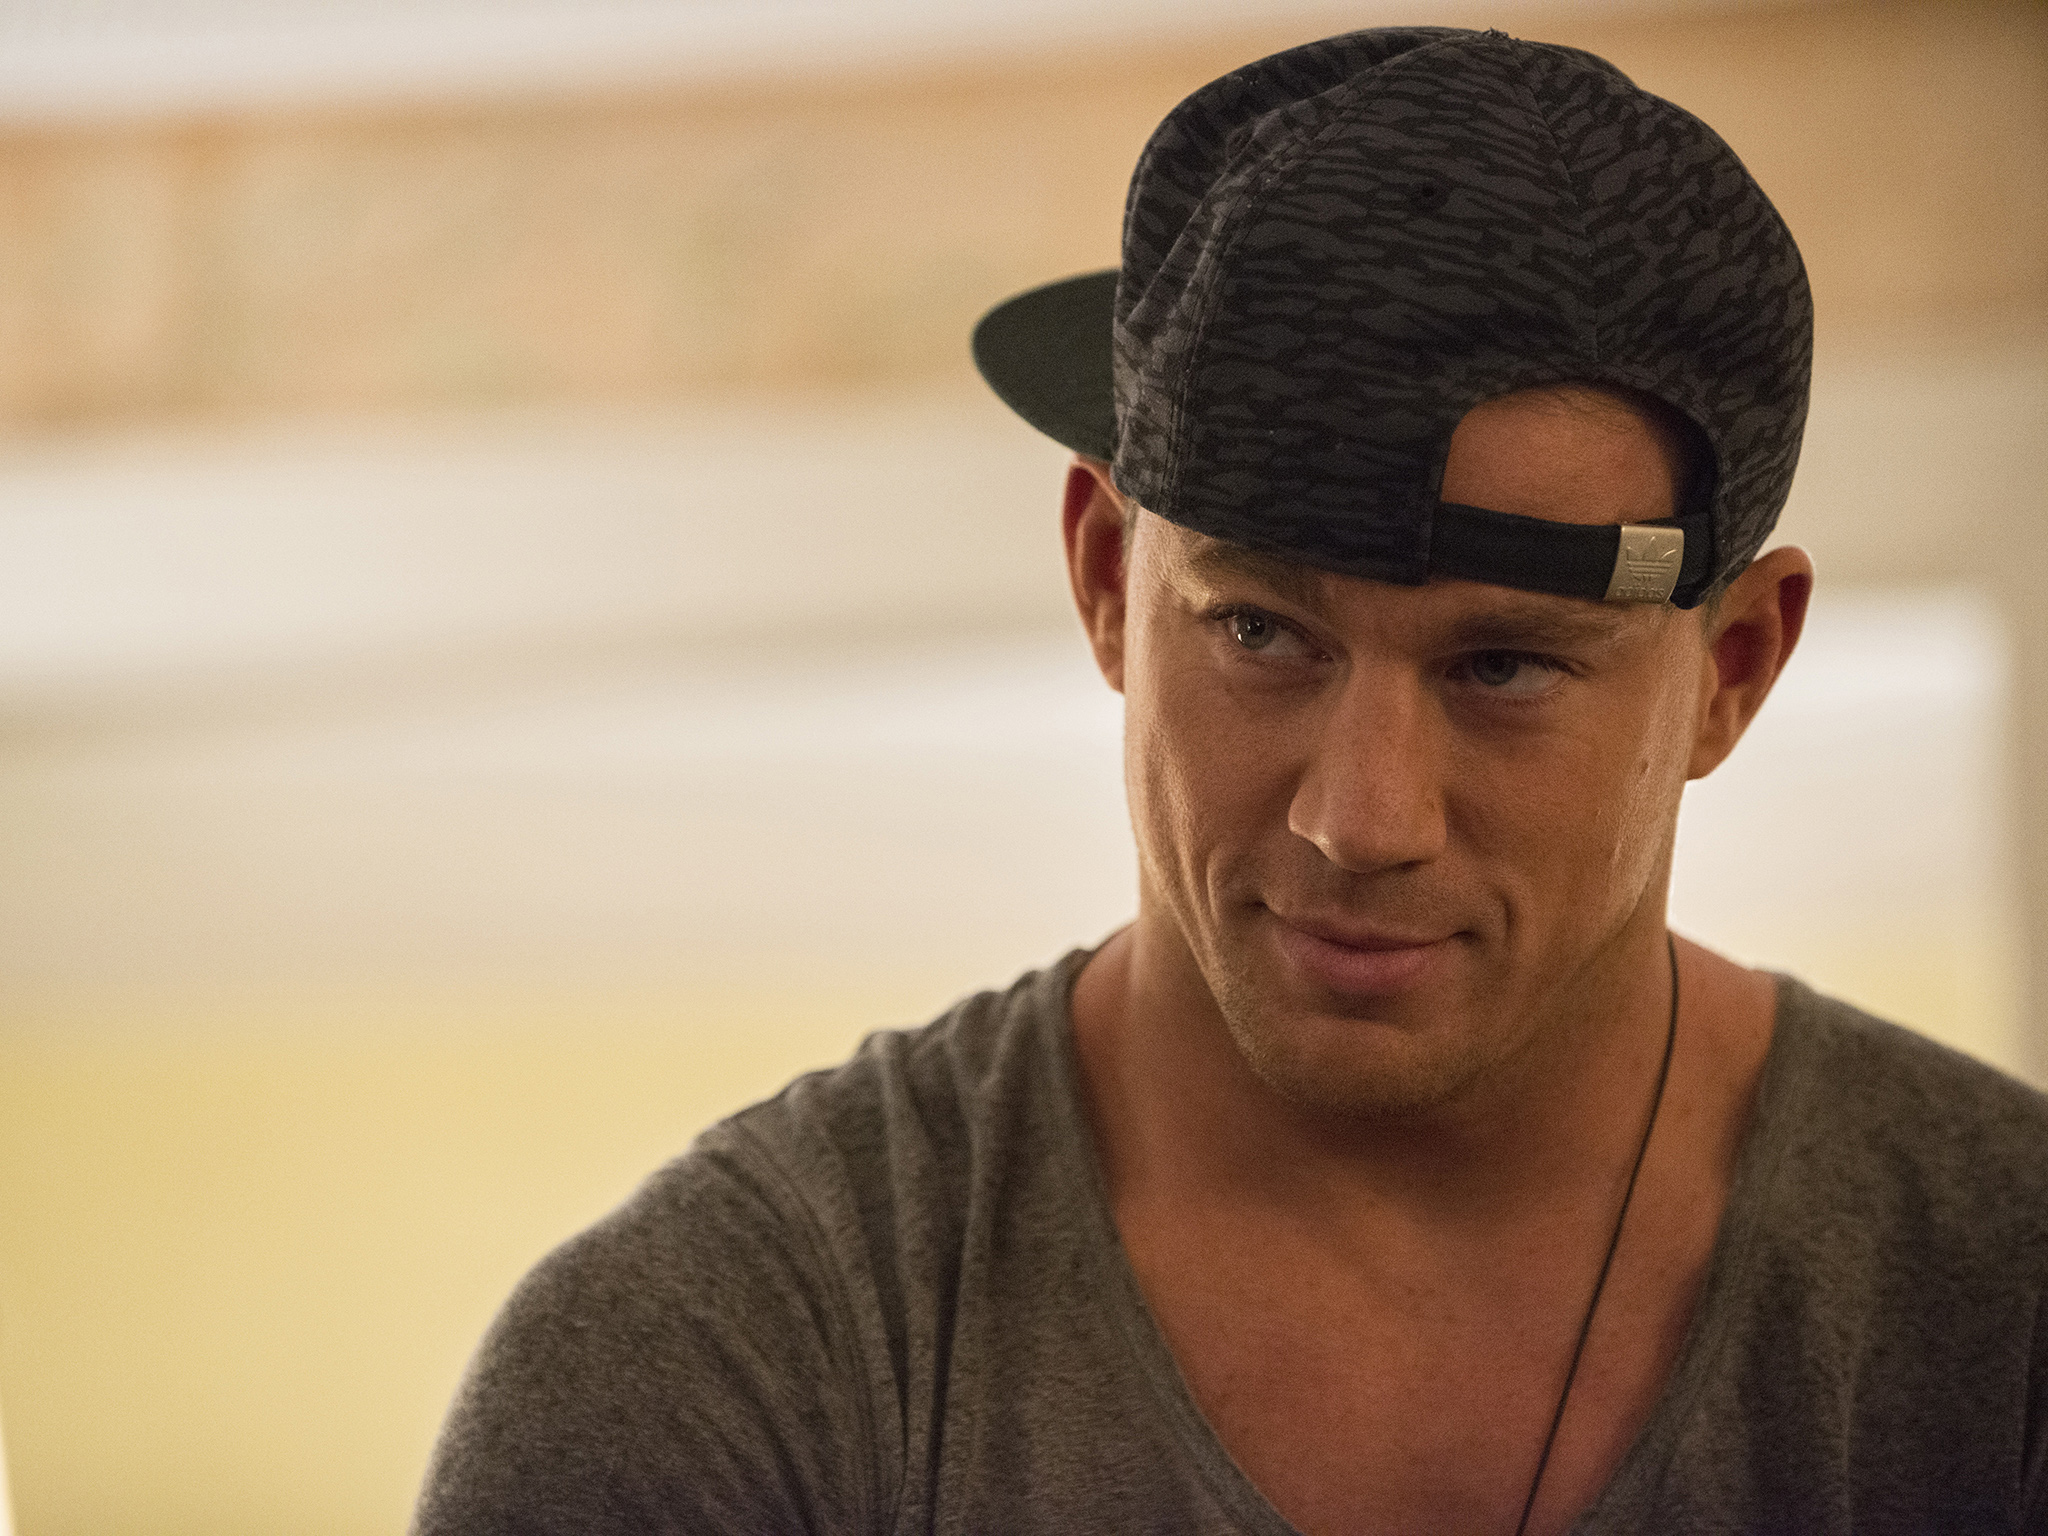 Channing Tatum on Ho Hos, hustling and getting into shape for 'Magic Mike XXL'